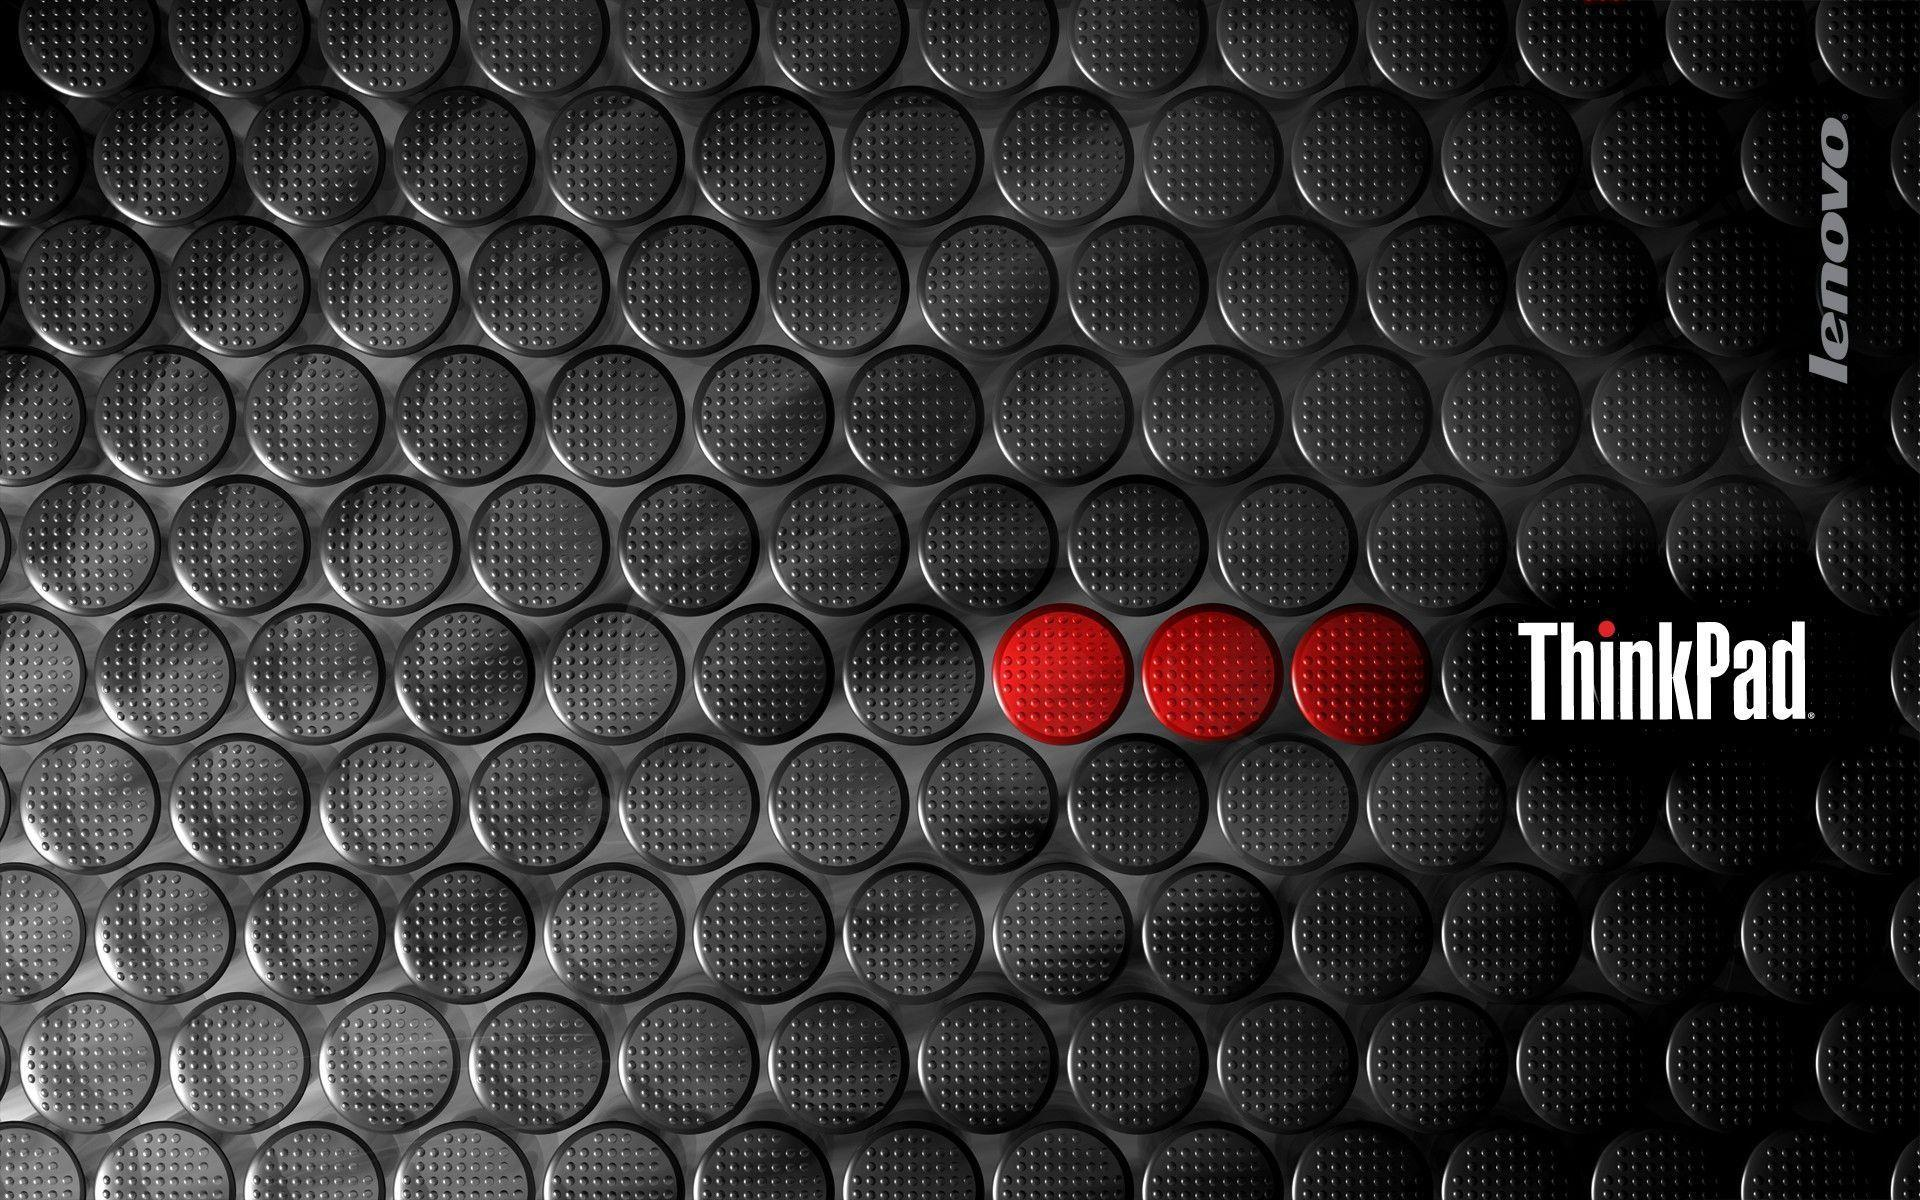 Lenovo Thinkpad Wallpapers Wallpaper Cave